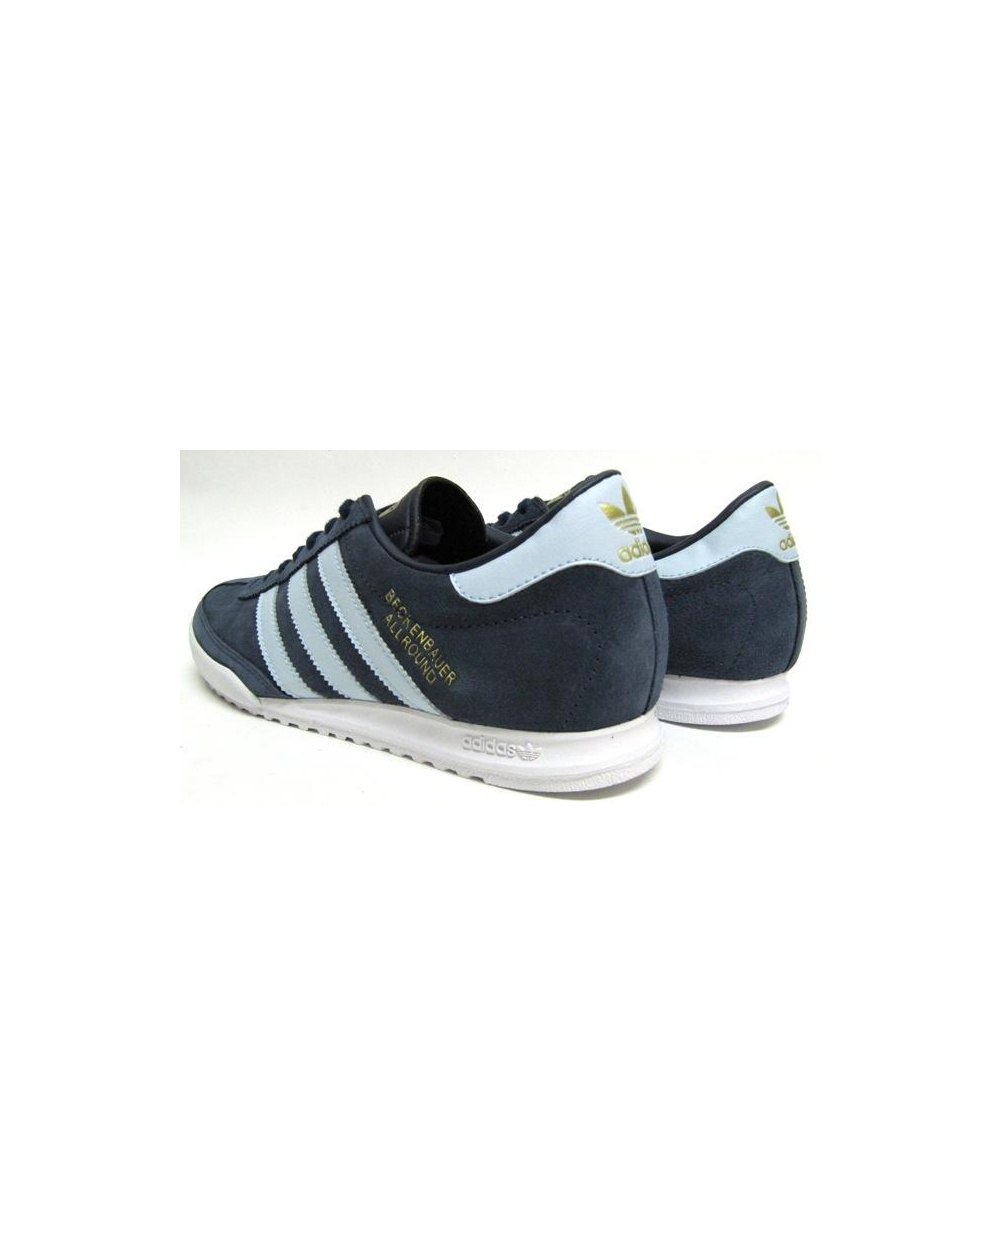 nouvelle arrivee ae541 e9099 Adidas Beckenbauer Trainers Navy/Argentina Blue